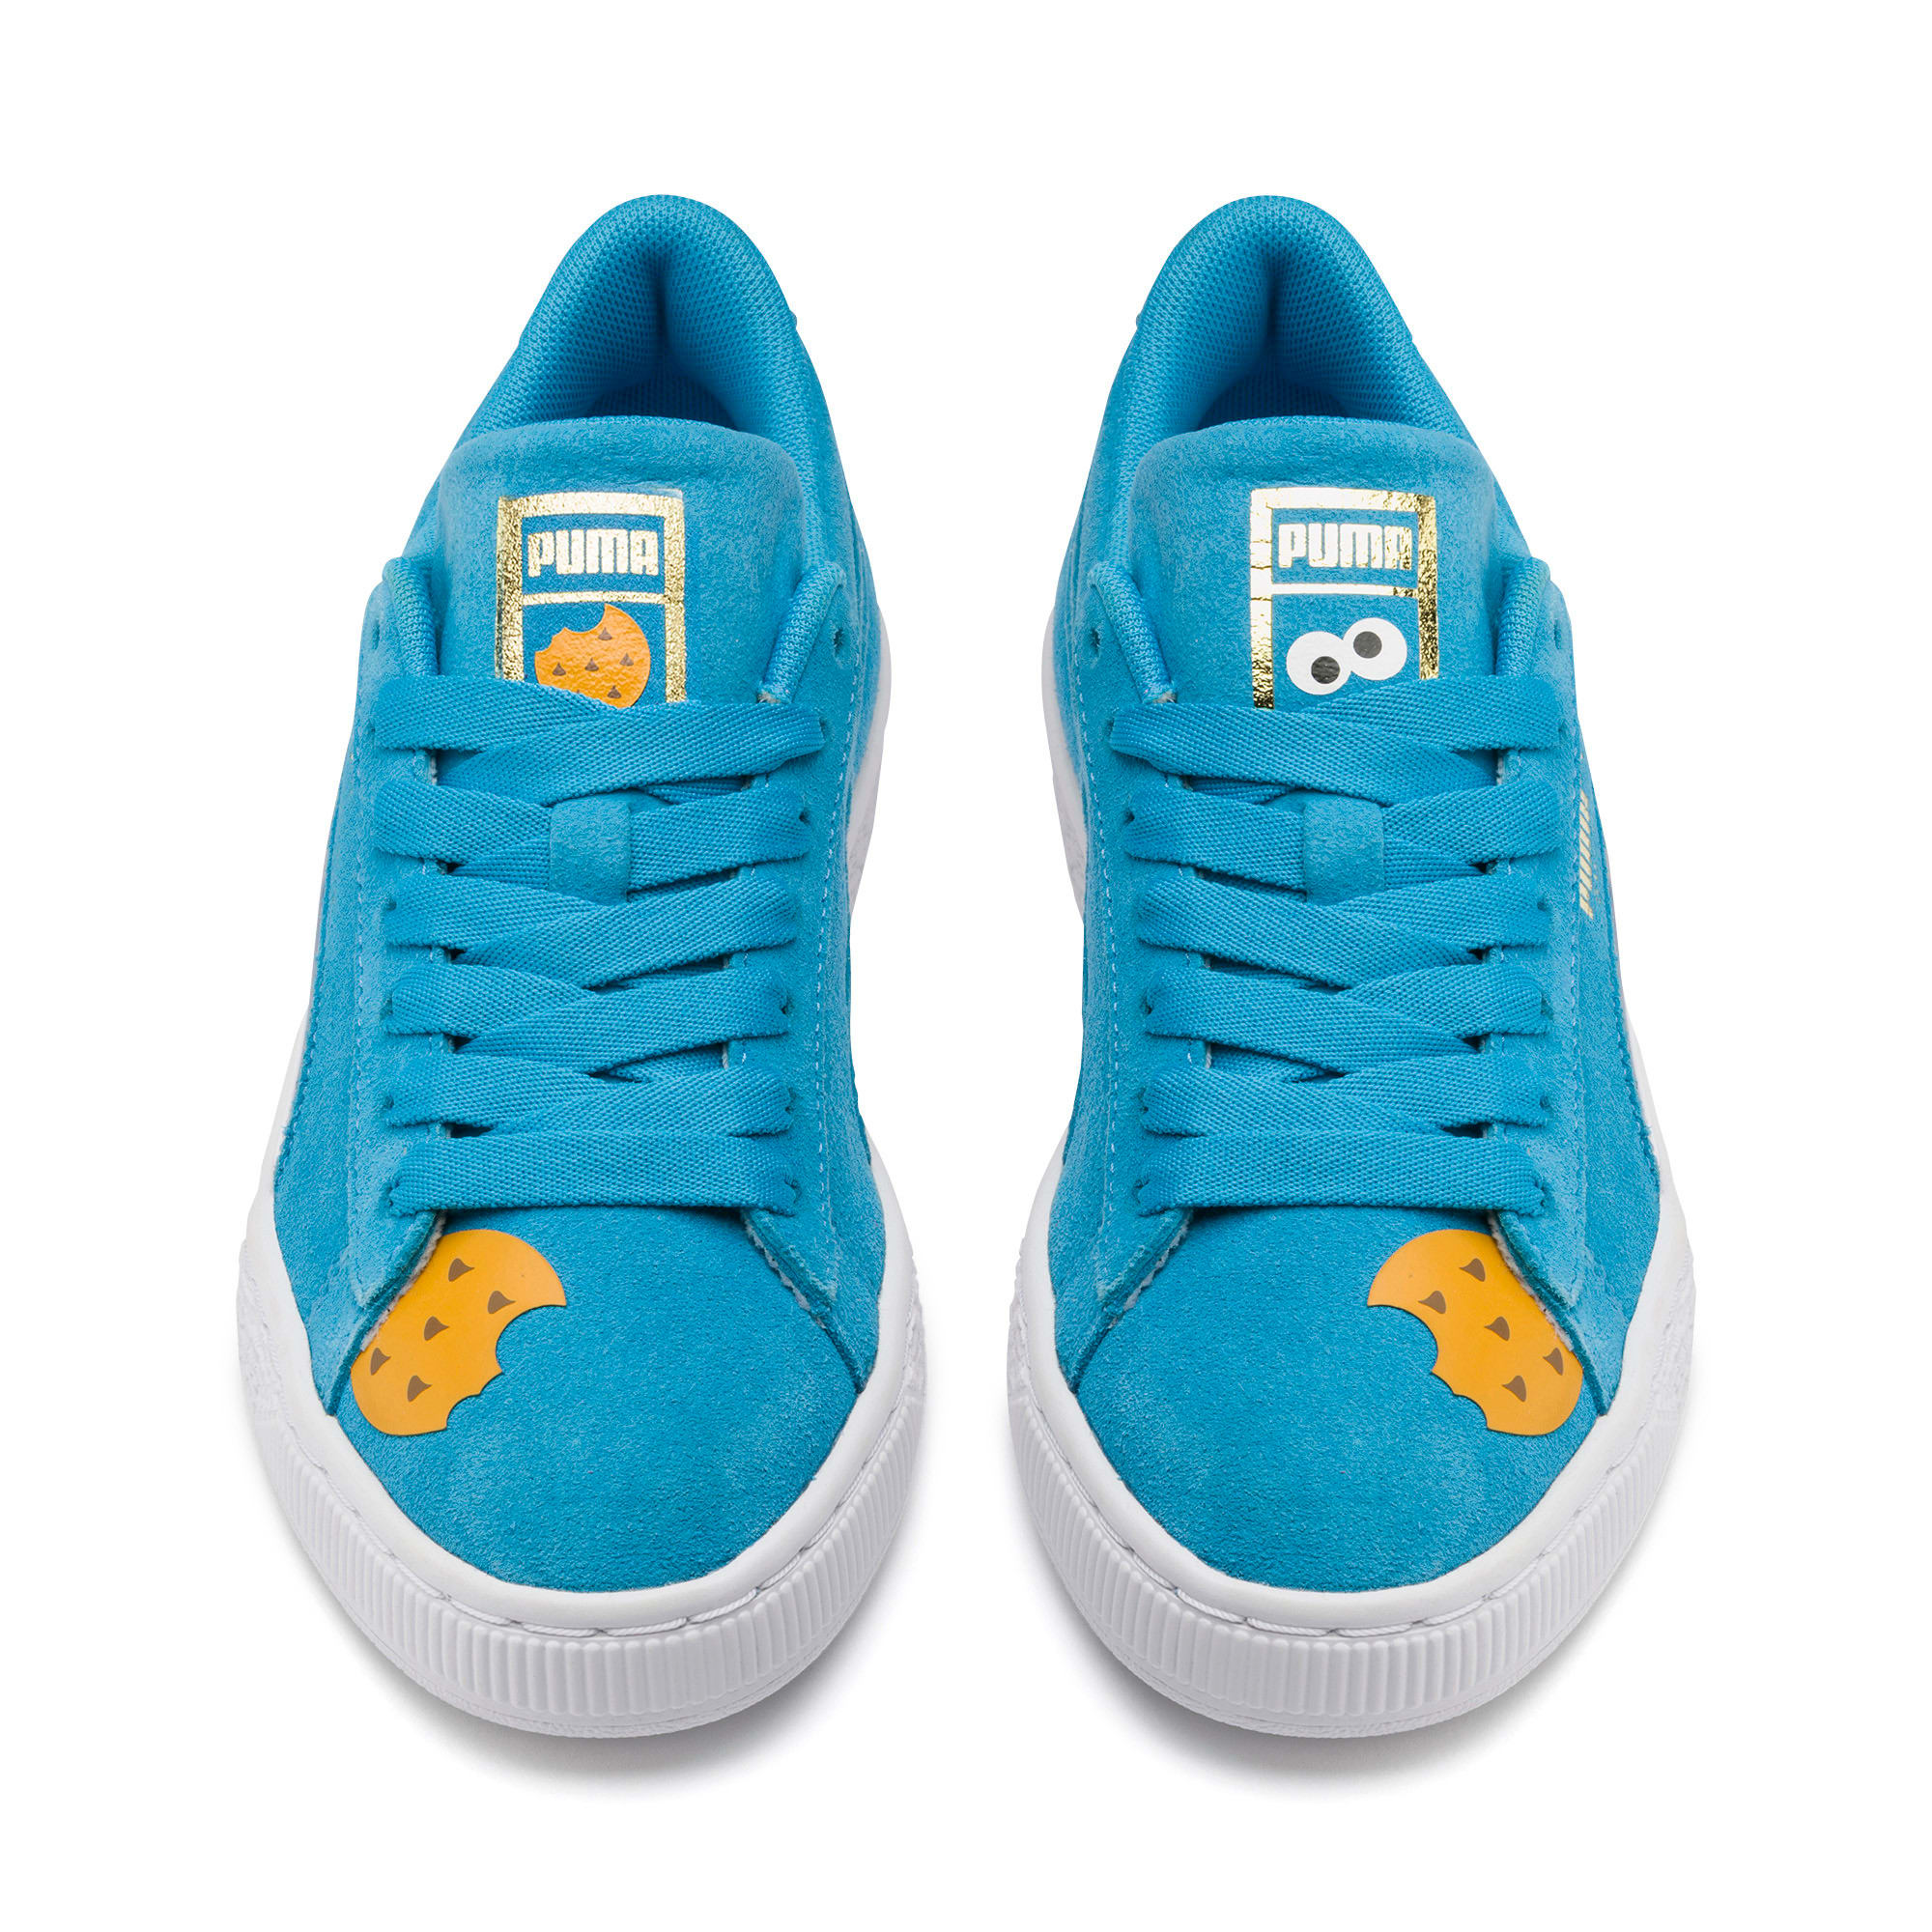 Thumbnail 7 of Sesamstraße 50 Suede Statement Youth Sneaker, Bleu Azur-Puma White, medium